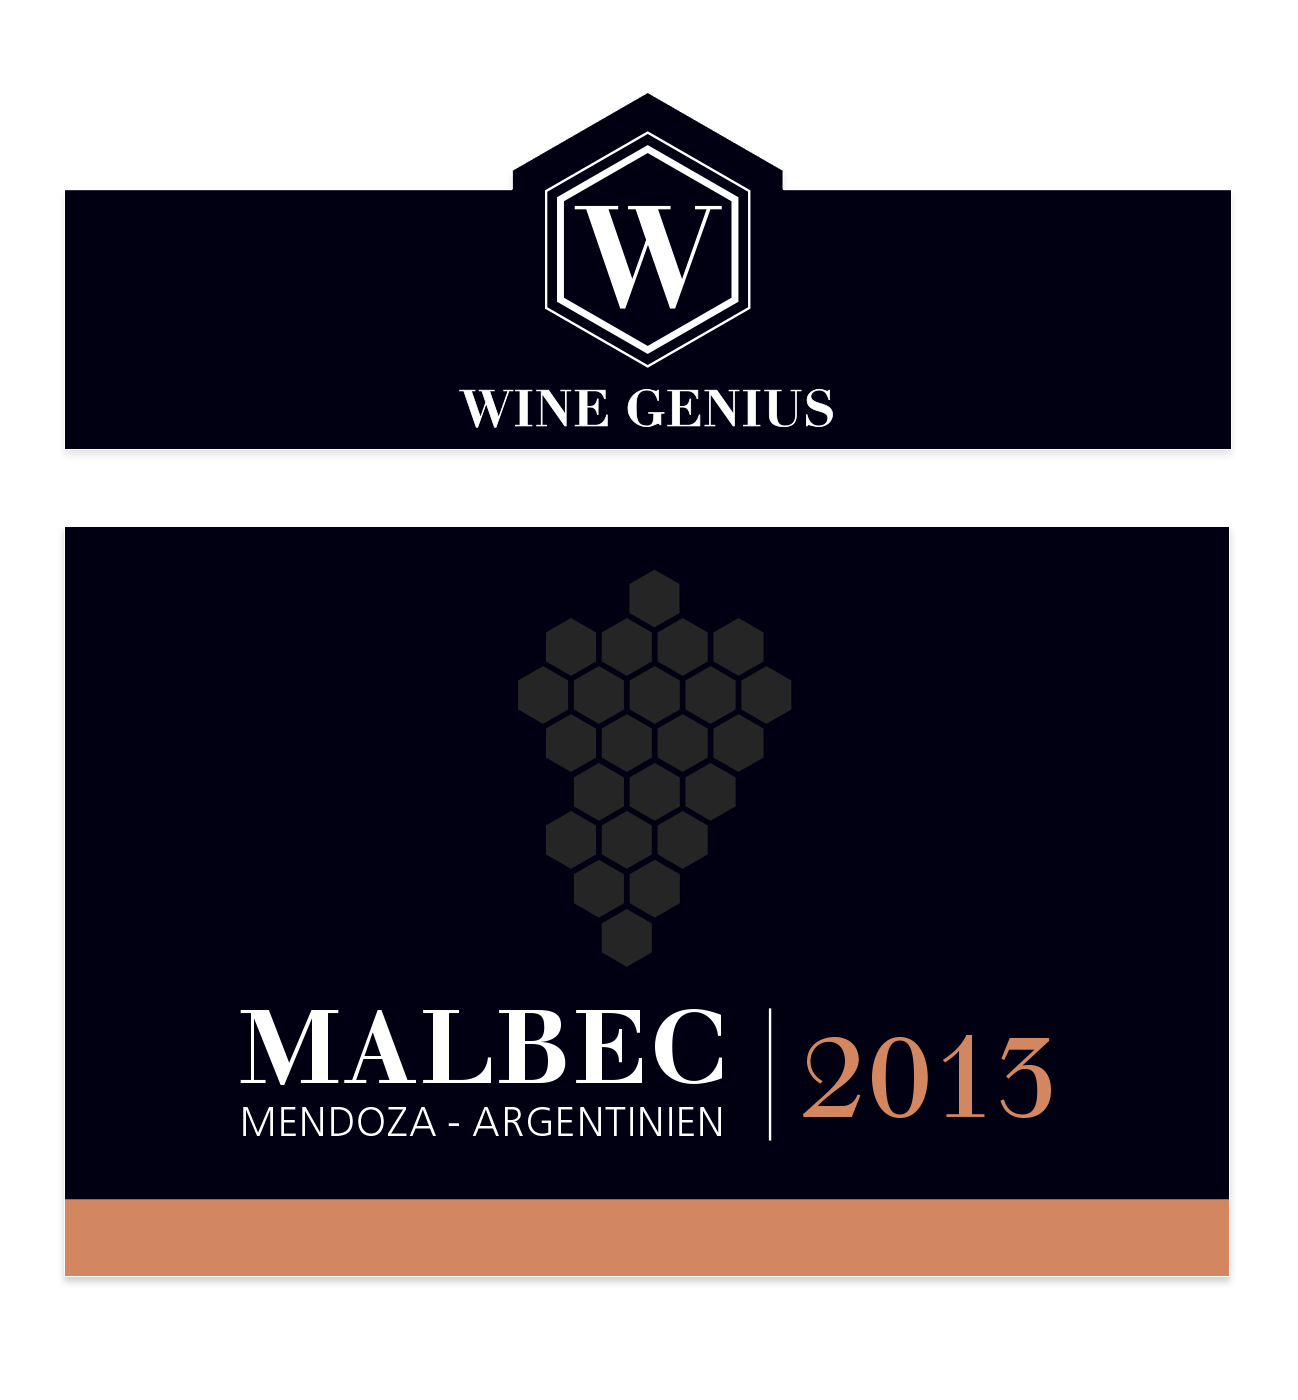 Malbec Wine Label Design & Web Branding